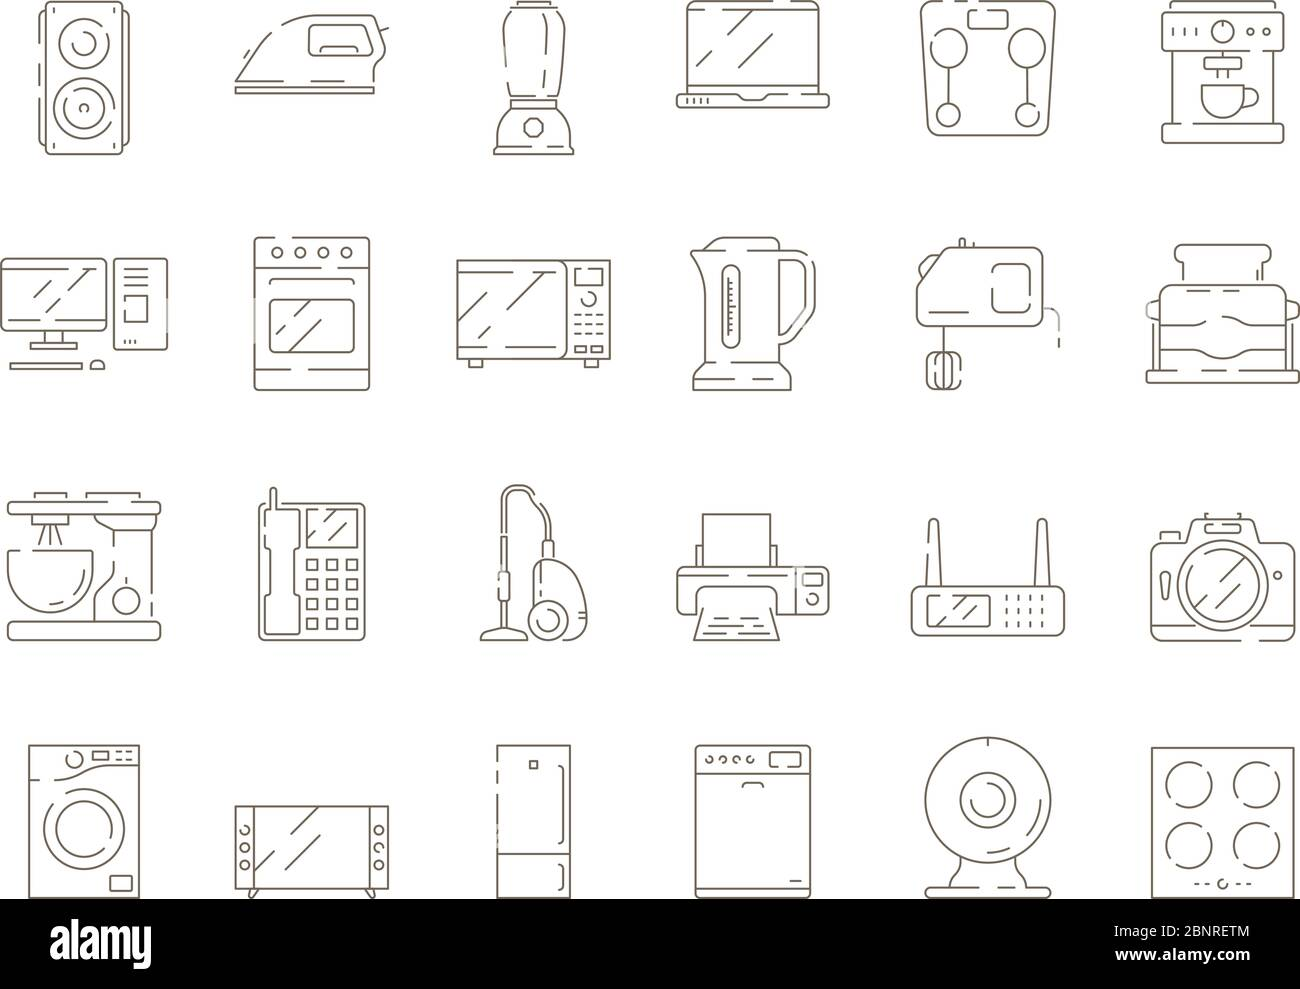 kitchen electrical design kitchen appliances electrical cut out stock images   pictures alamy  kitchen appliances electrical cut out